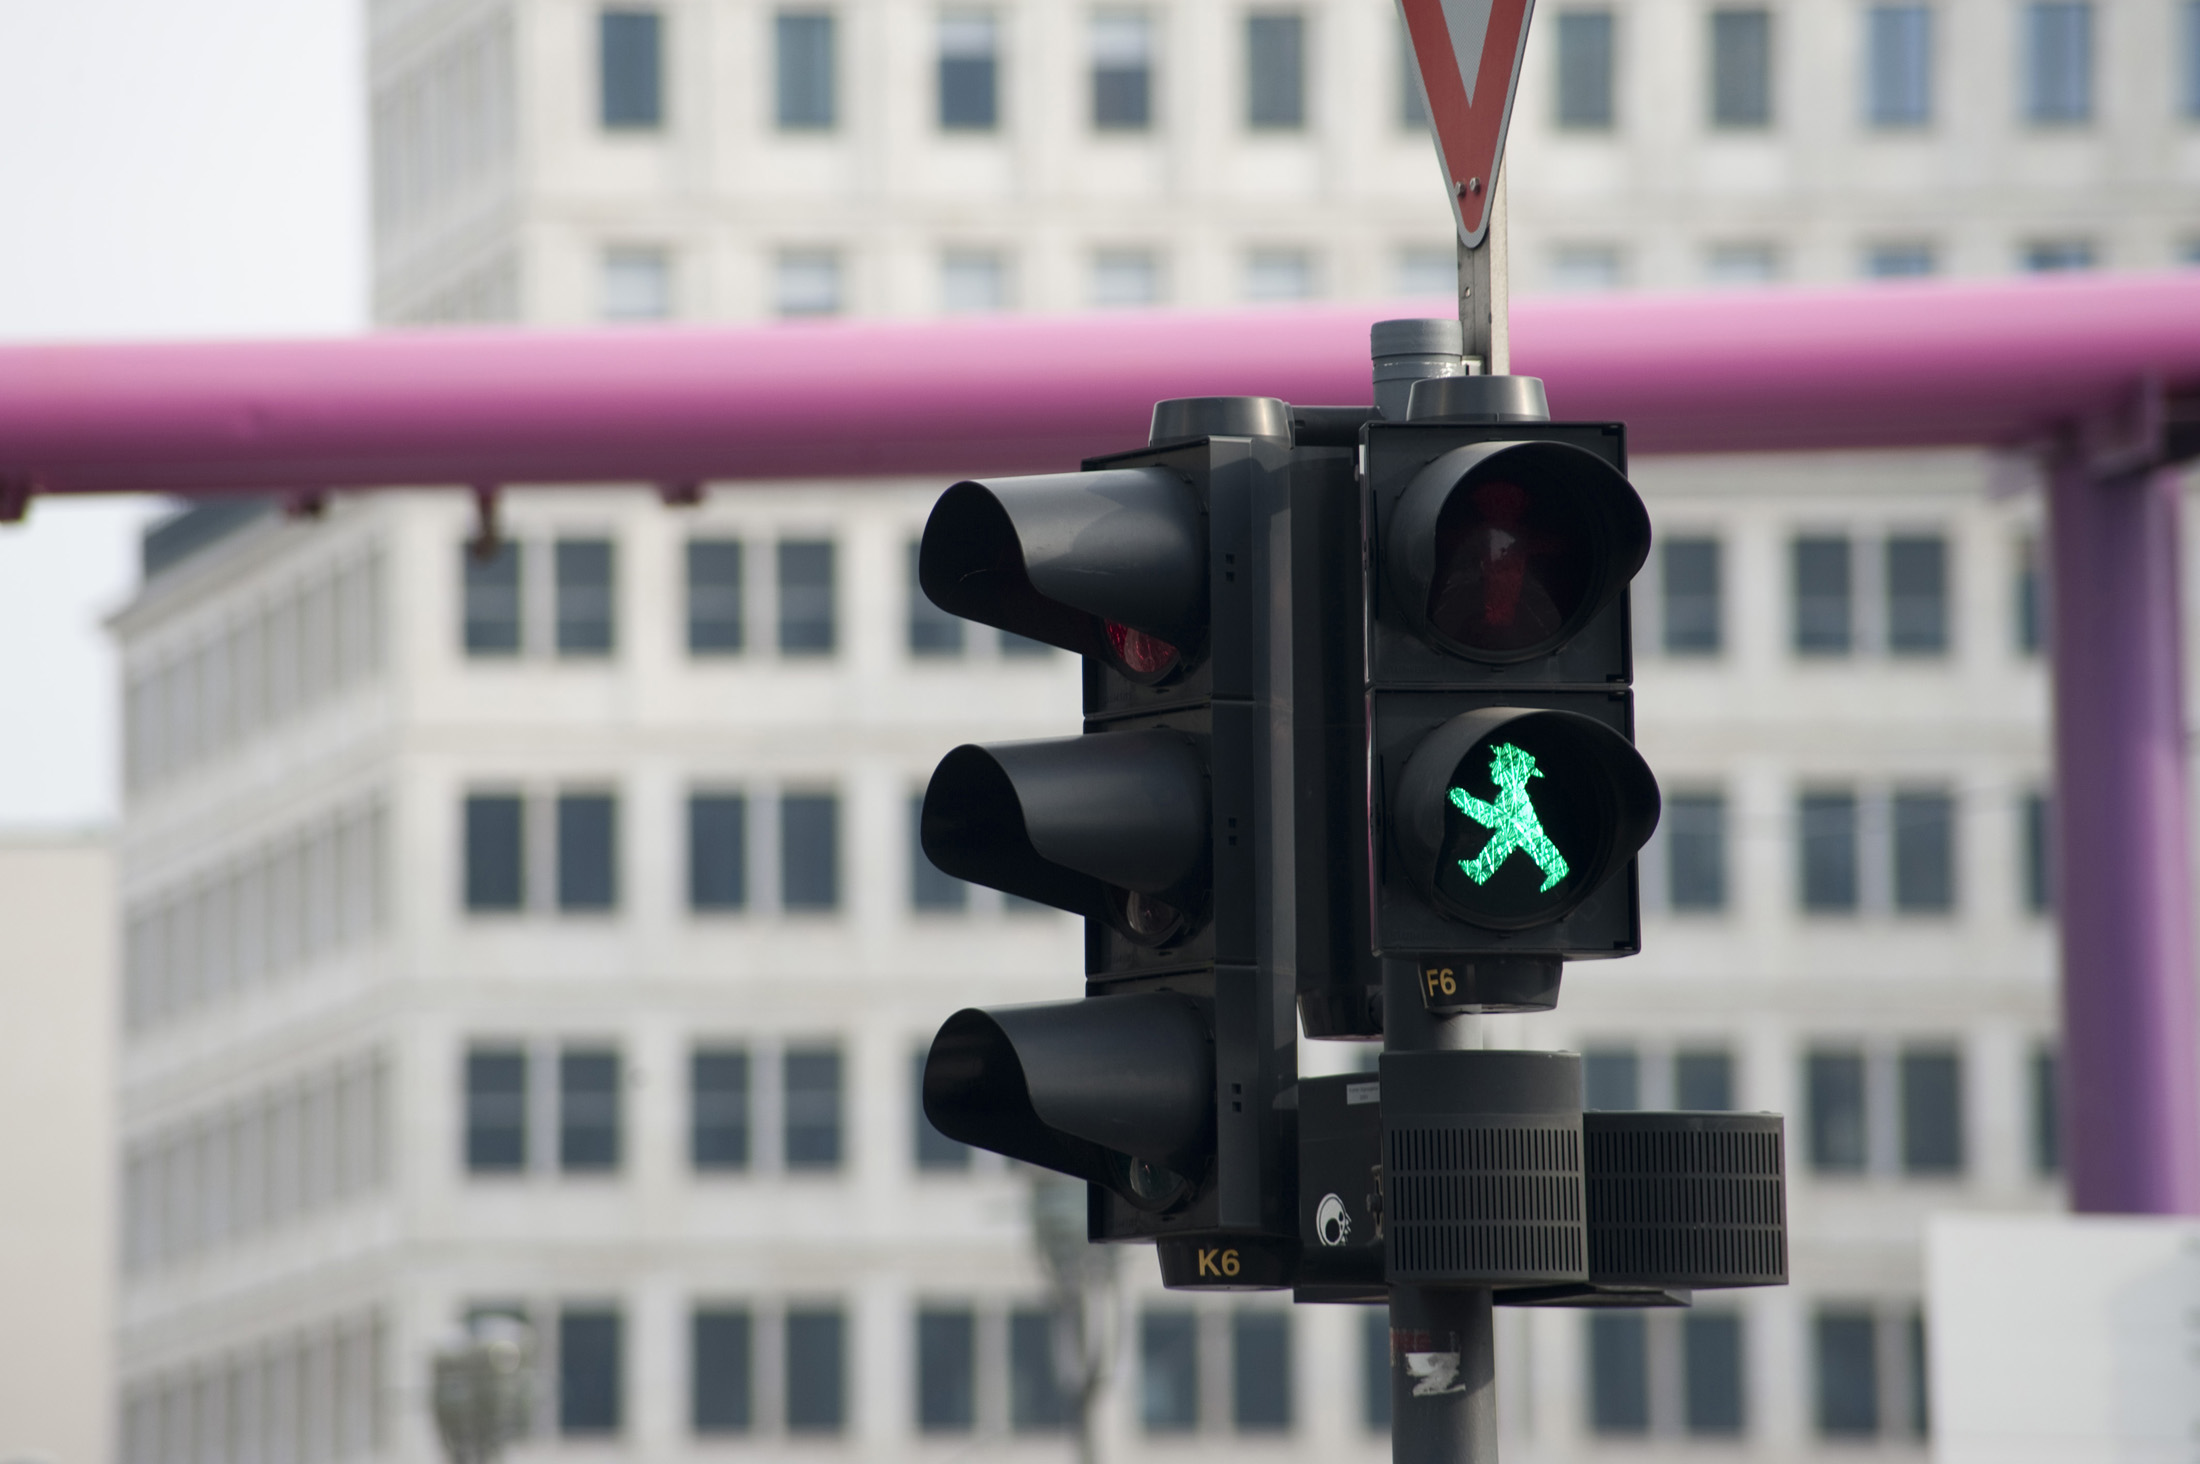 A green ampelmann crossing light in former east germany